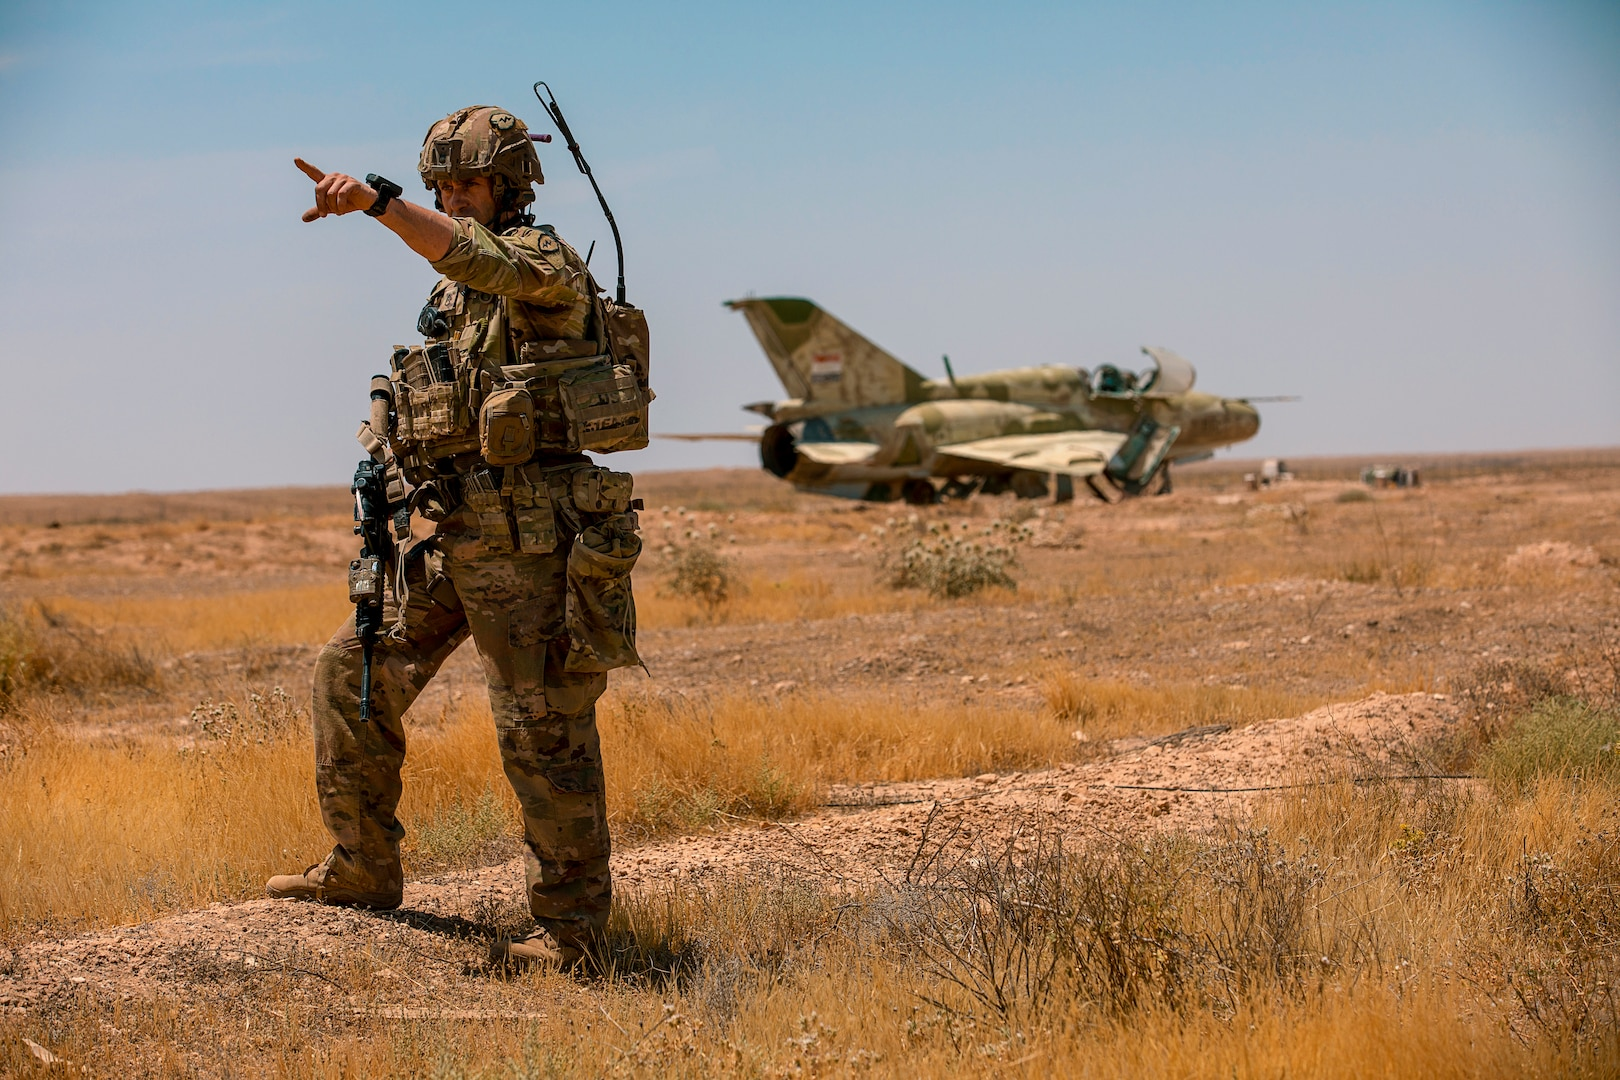 A soldier stands in a dry field and points at something in the distance; behind him, an old aircraft sits rusting in the desert.